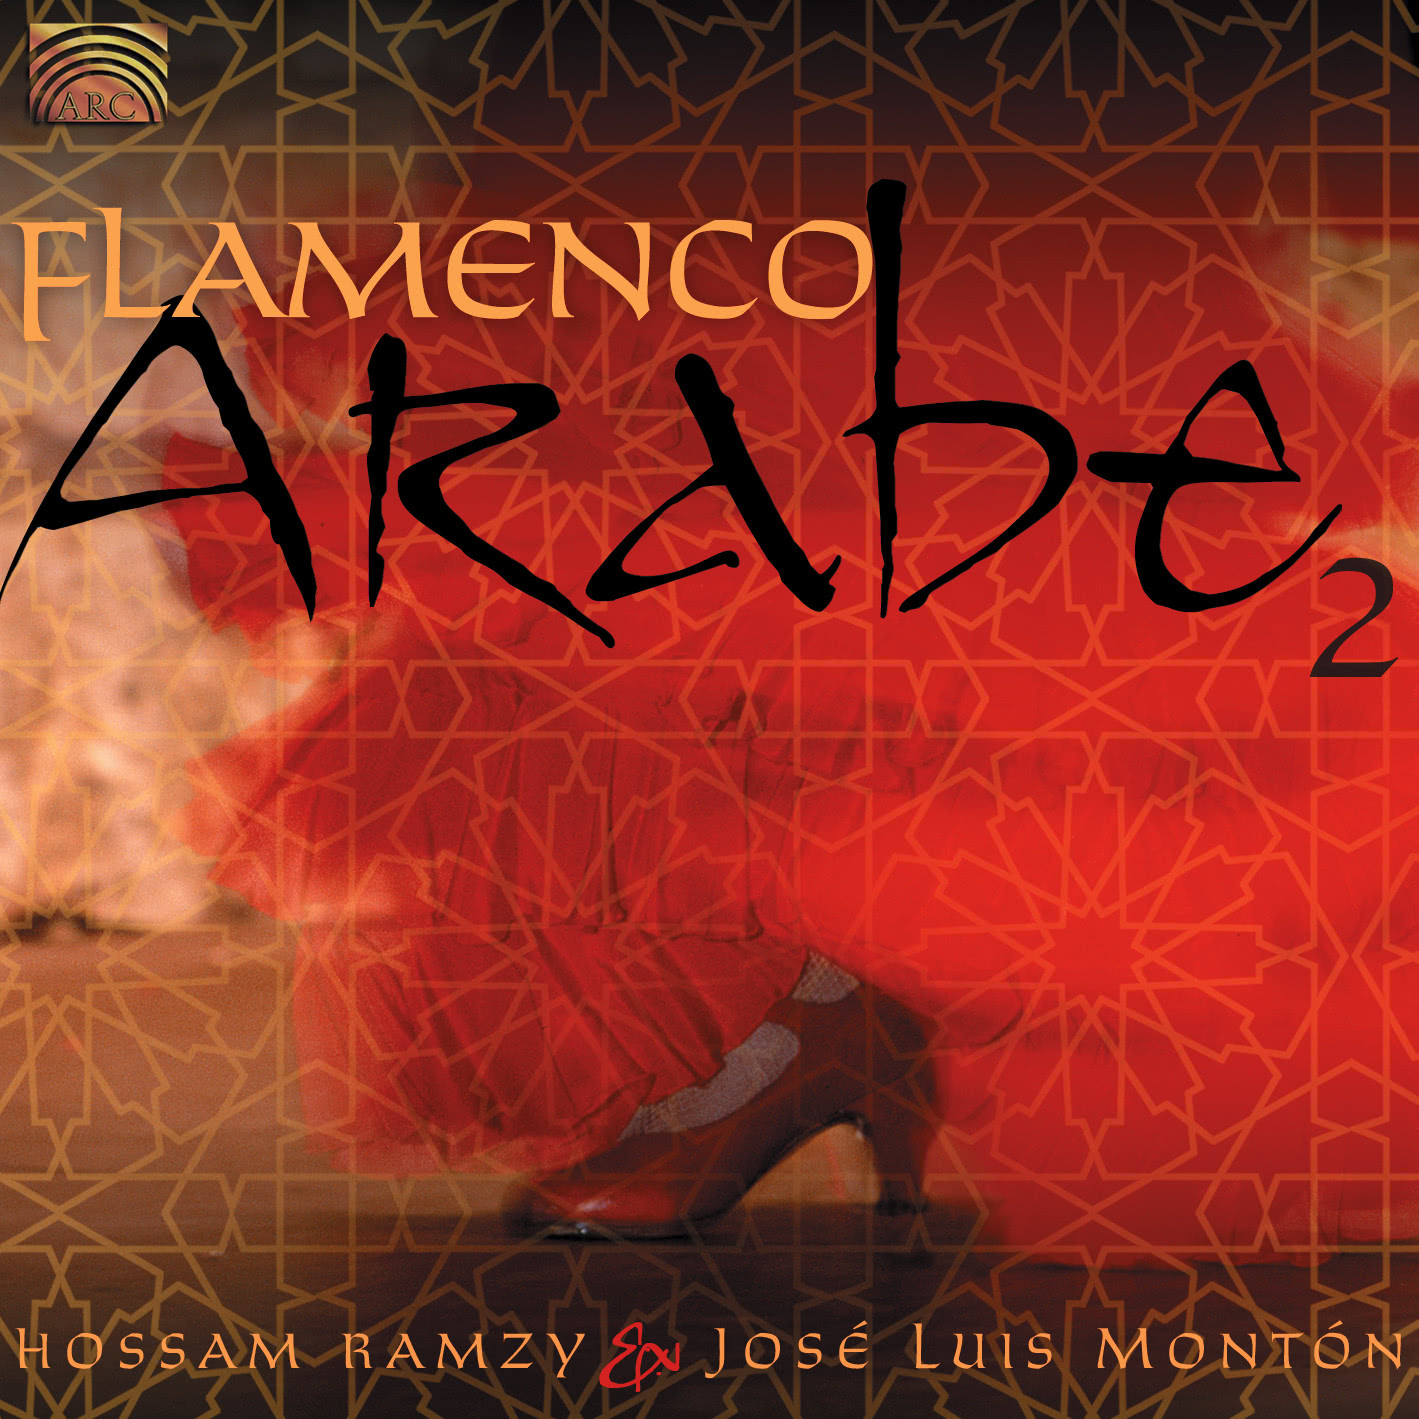 EUCD2000 Flamenco Arabe 2